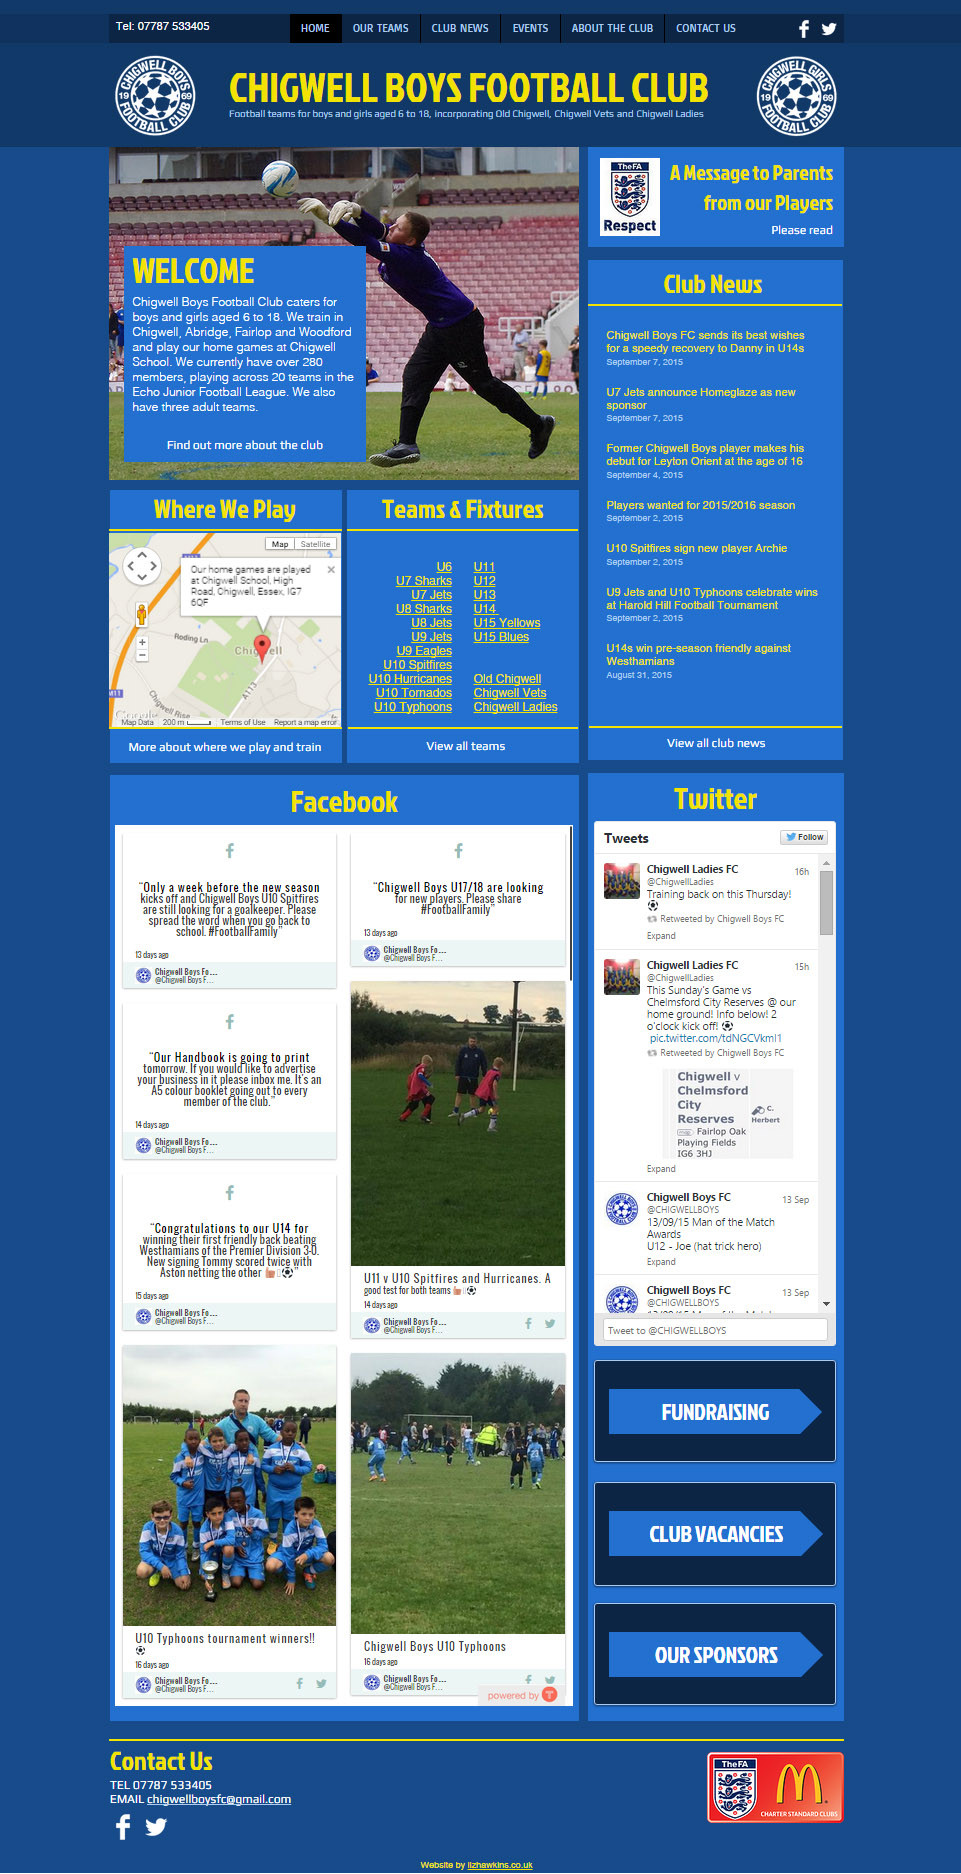 Chigwell Boys FC website home page